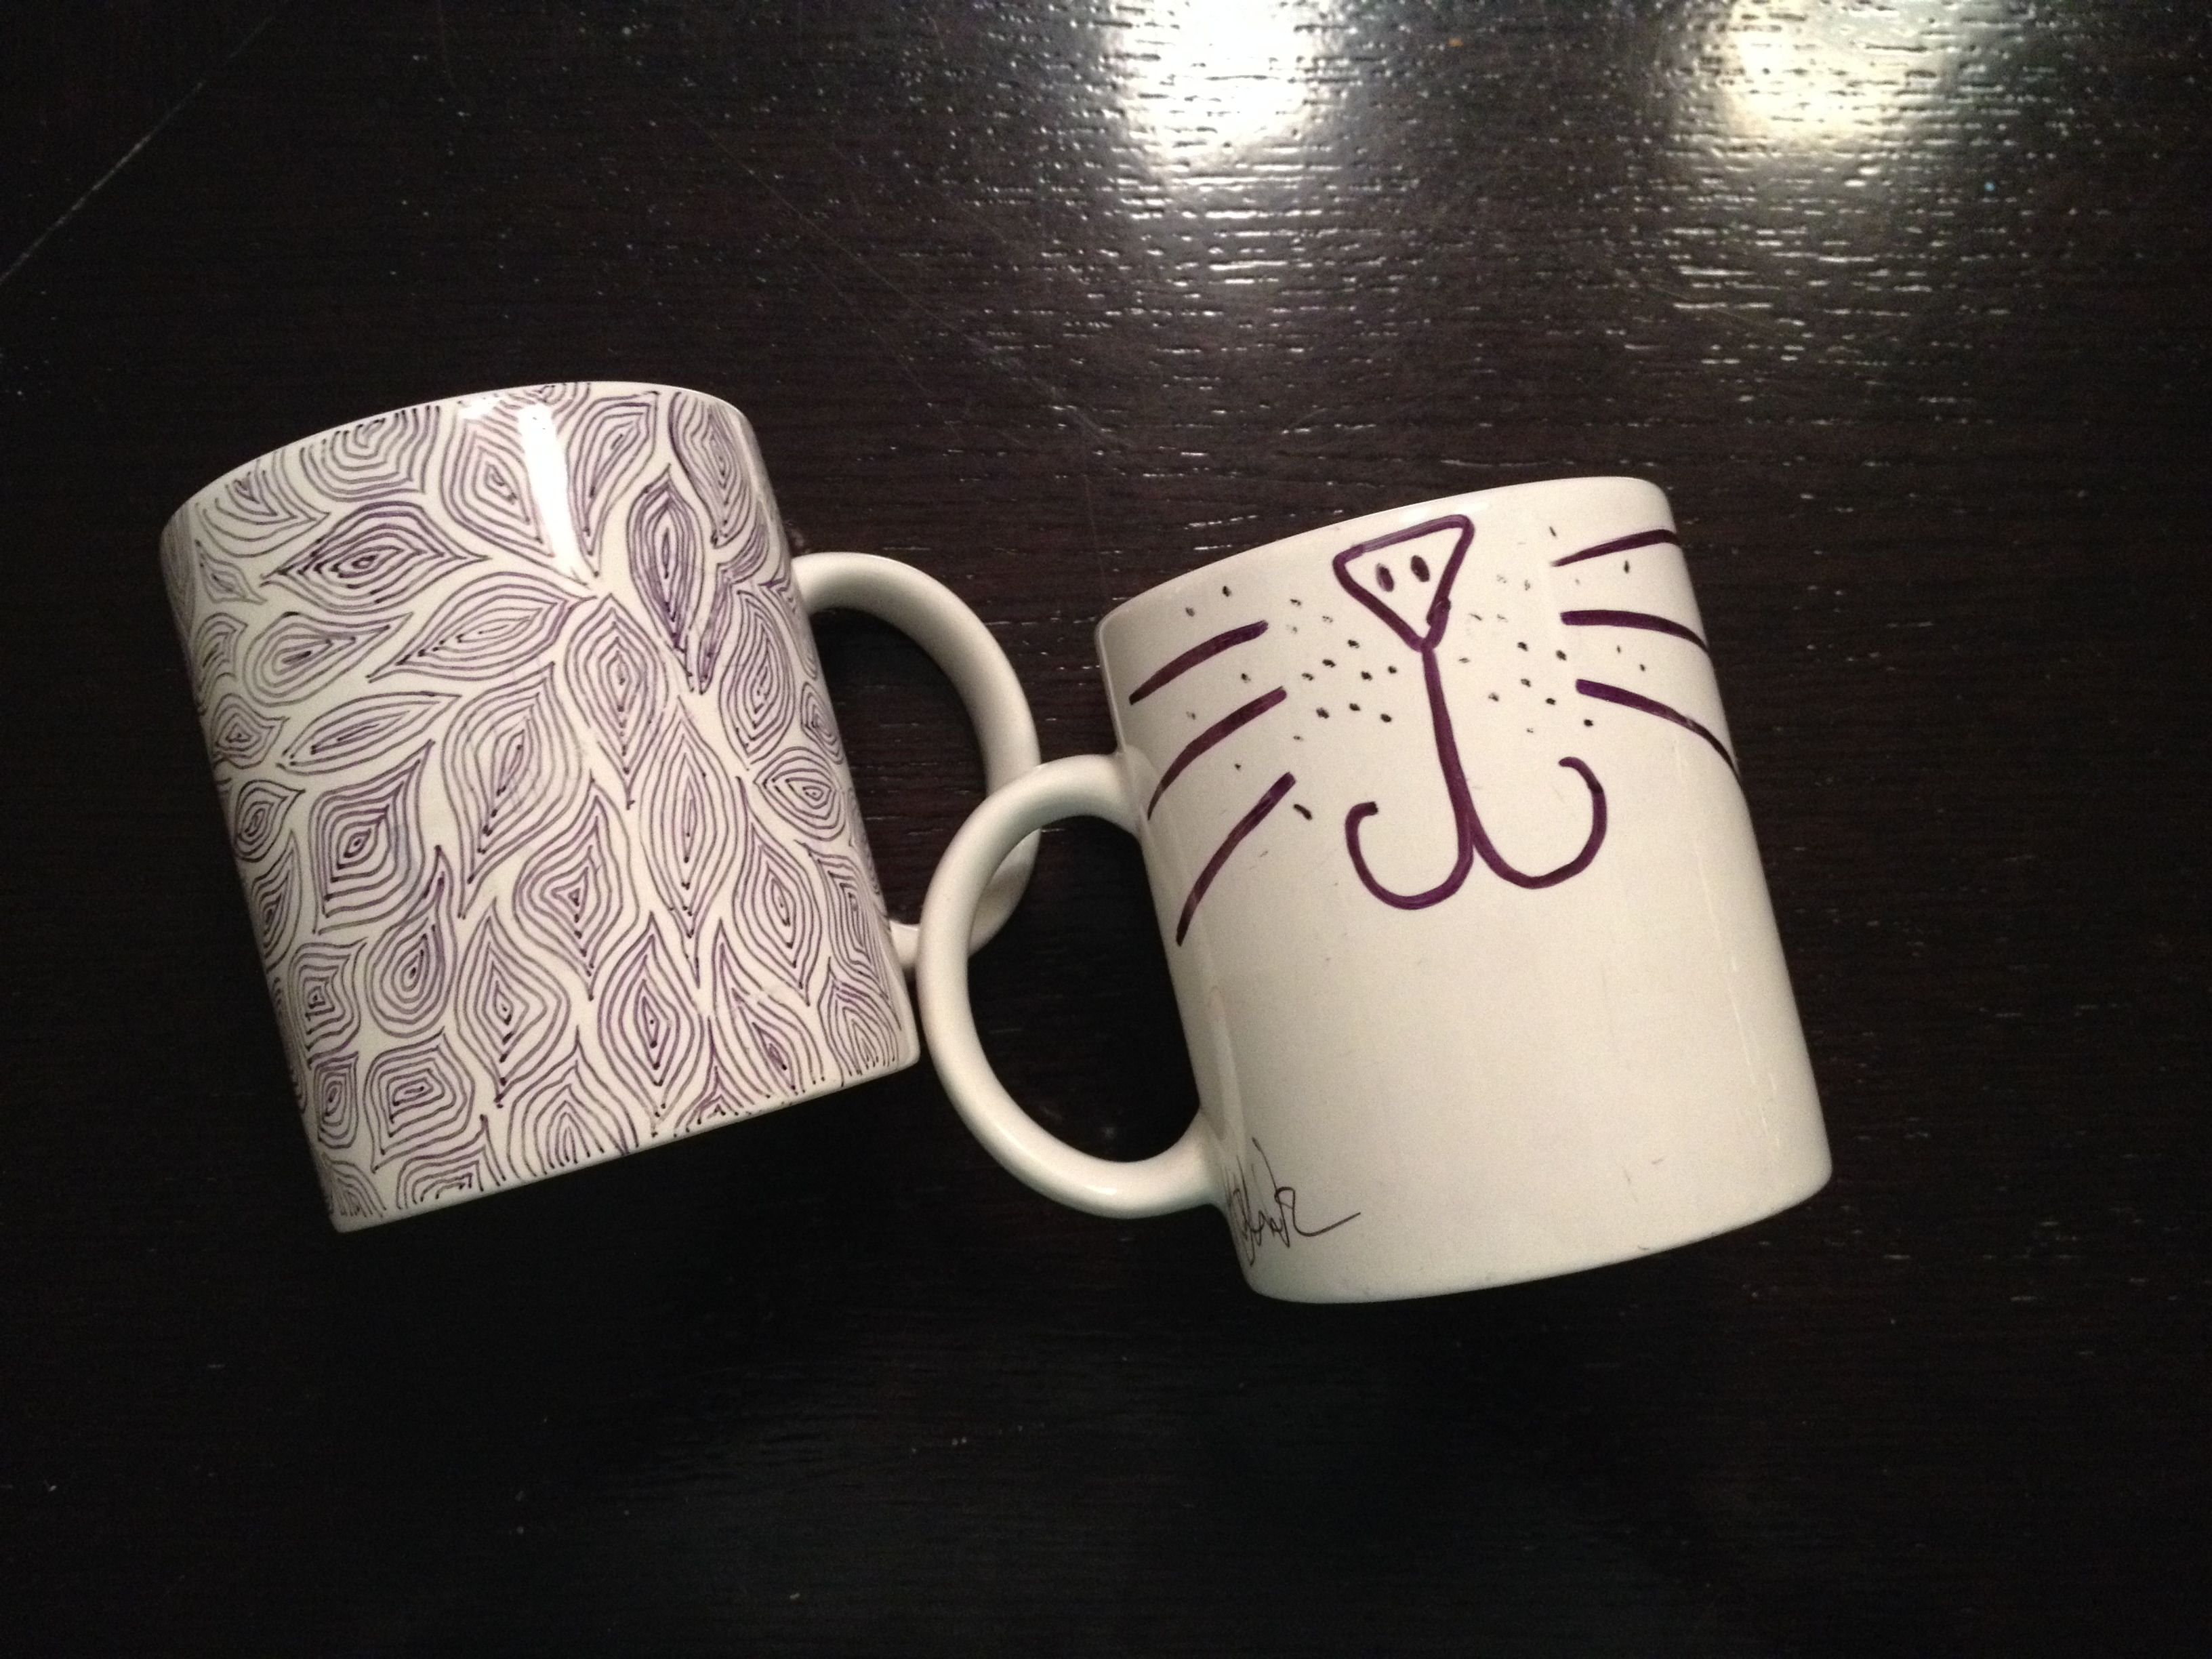 Craft ideas with sharpies - Find This Pin And More On Sharpie Project Ideas